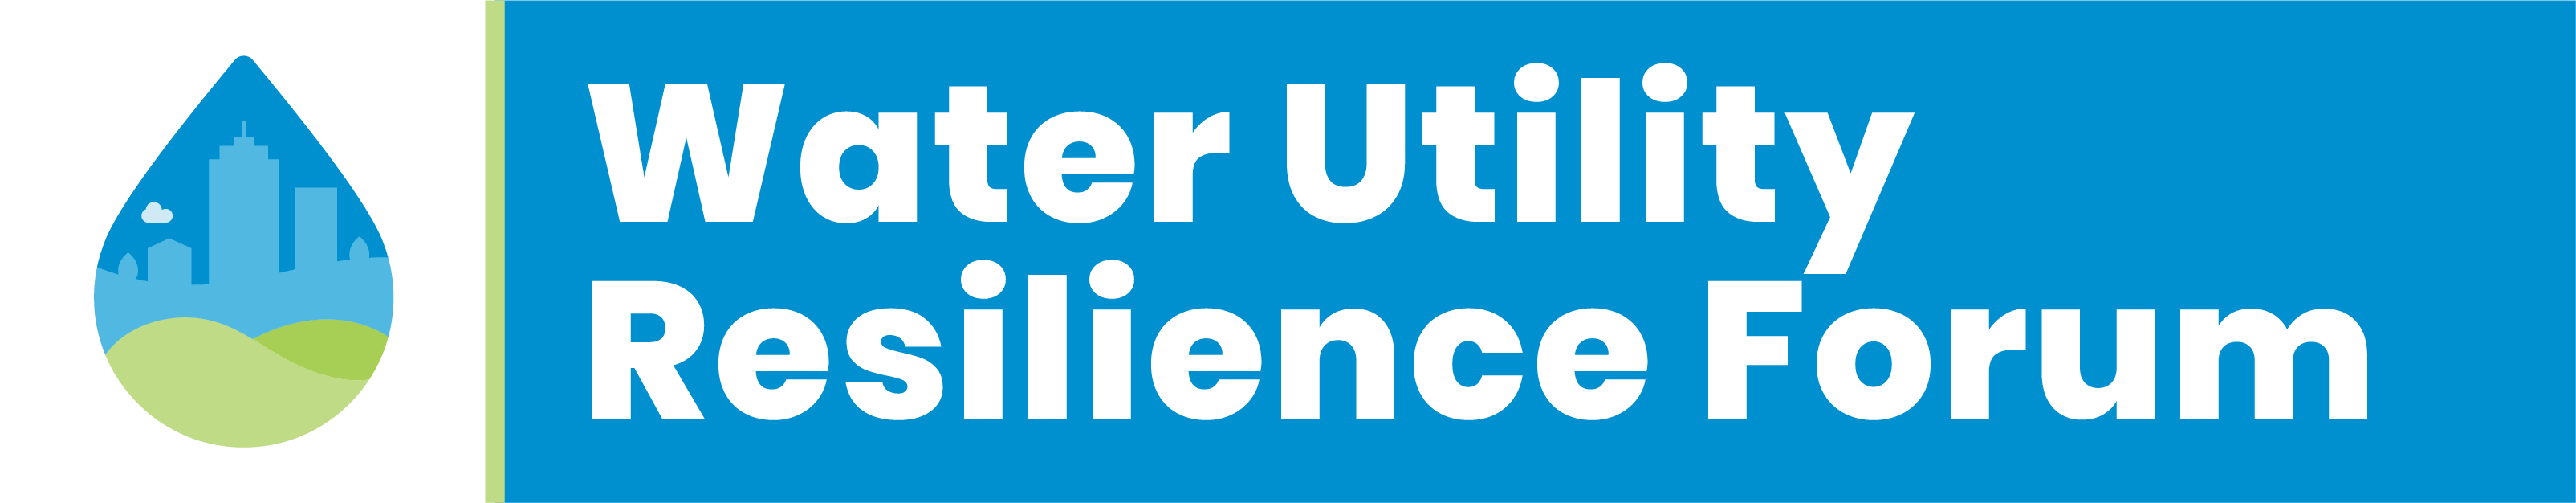 2020 Water Utility Resilience Forum